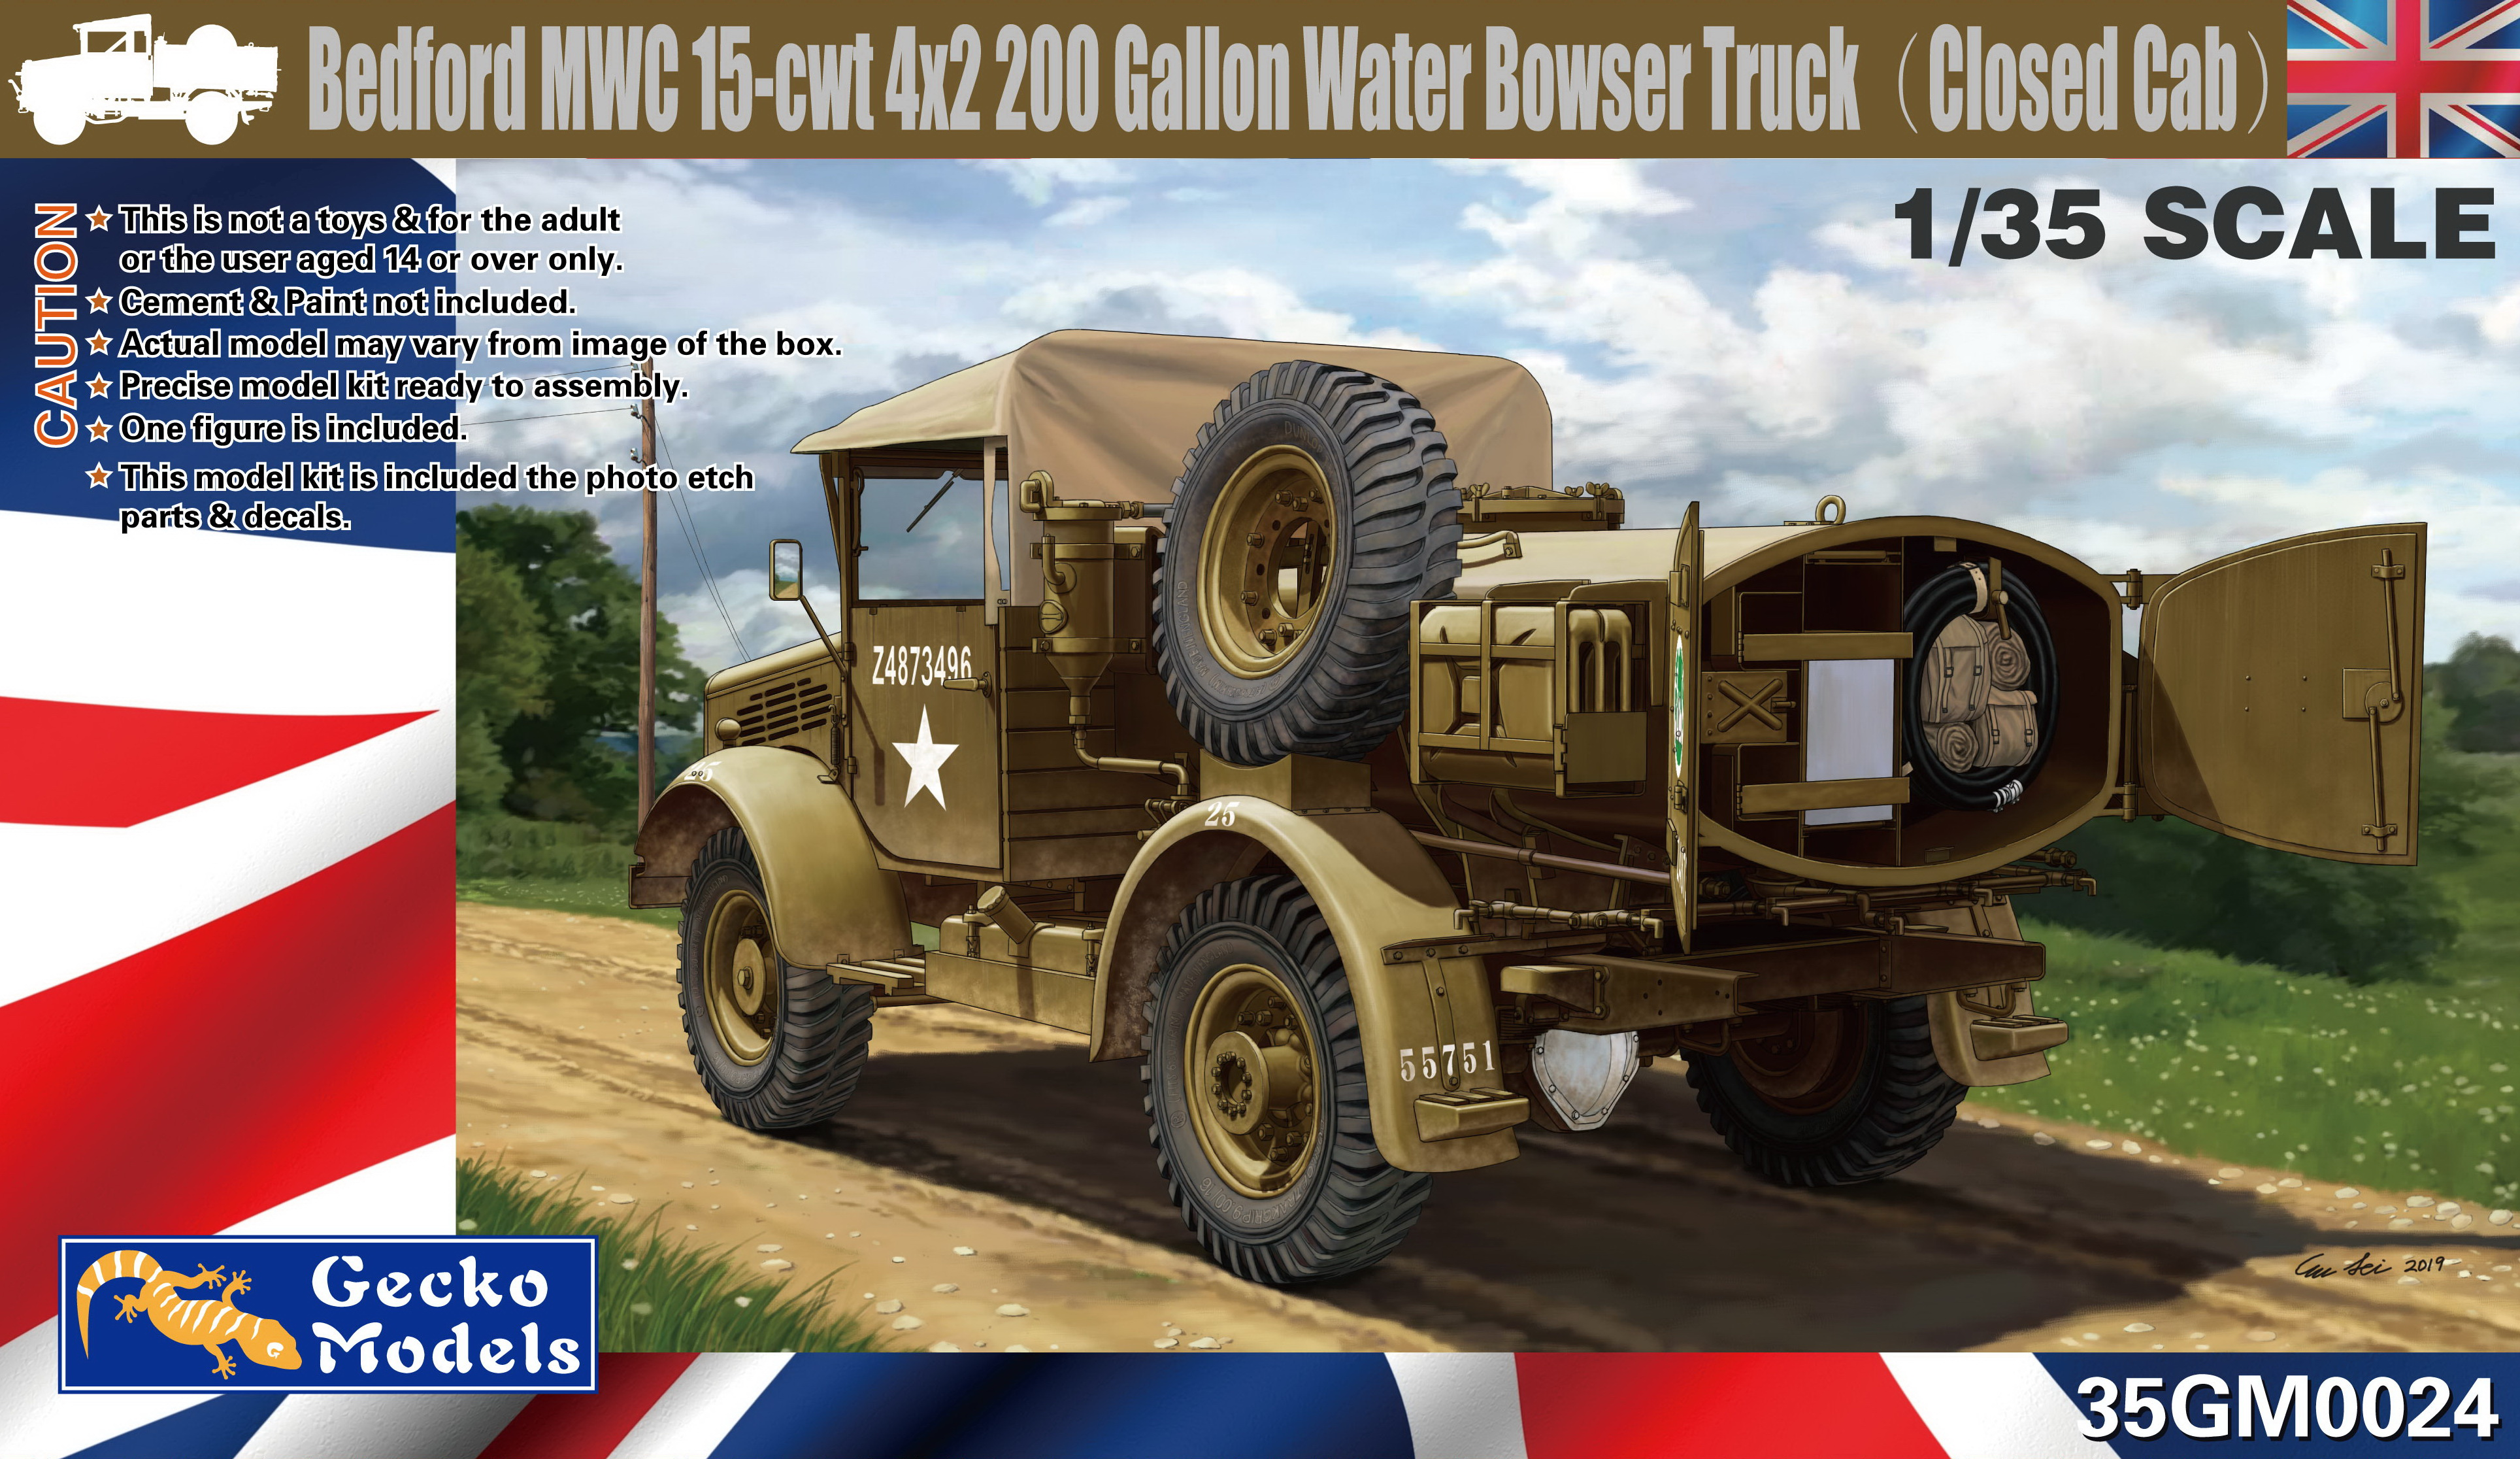 Gecko 1/35 Bedford MWC 15-cwt 4x2 200 Gallon Water Bowser Truck